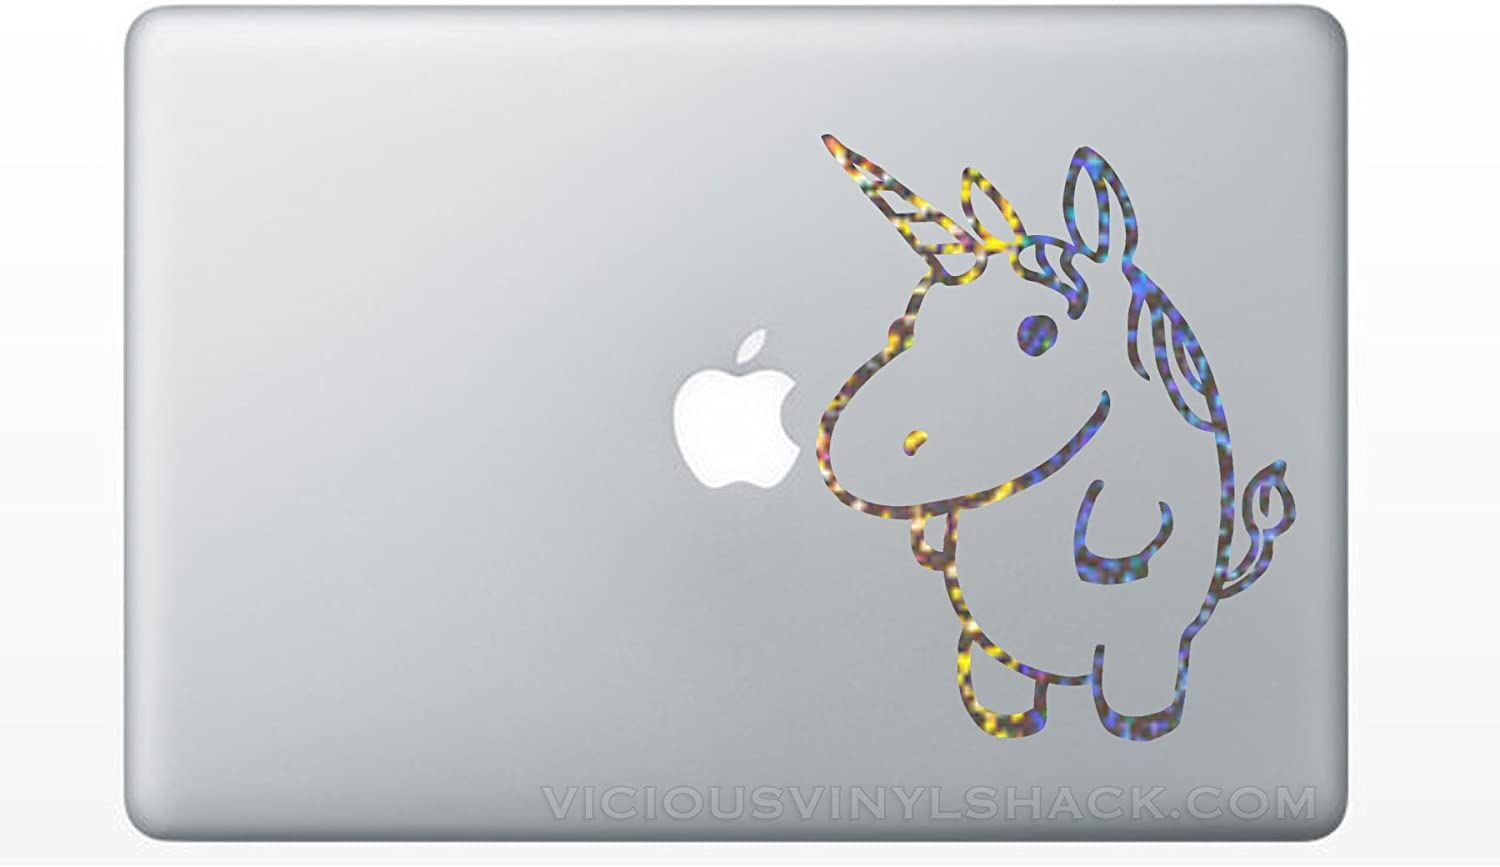 Fat Cute Unicorn (SILVER SPARKLES) Vinyl MacBook Car Laptop Decal Stickers (Multiple Colors Available) Kids Children Stuffed Animal Baby Babies Fantasy Rainbow Button Standing Pencil Box Binder Sweet Glitter